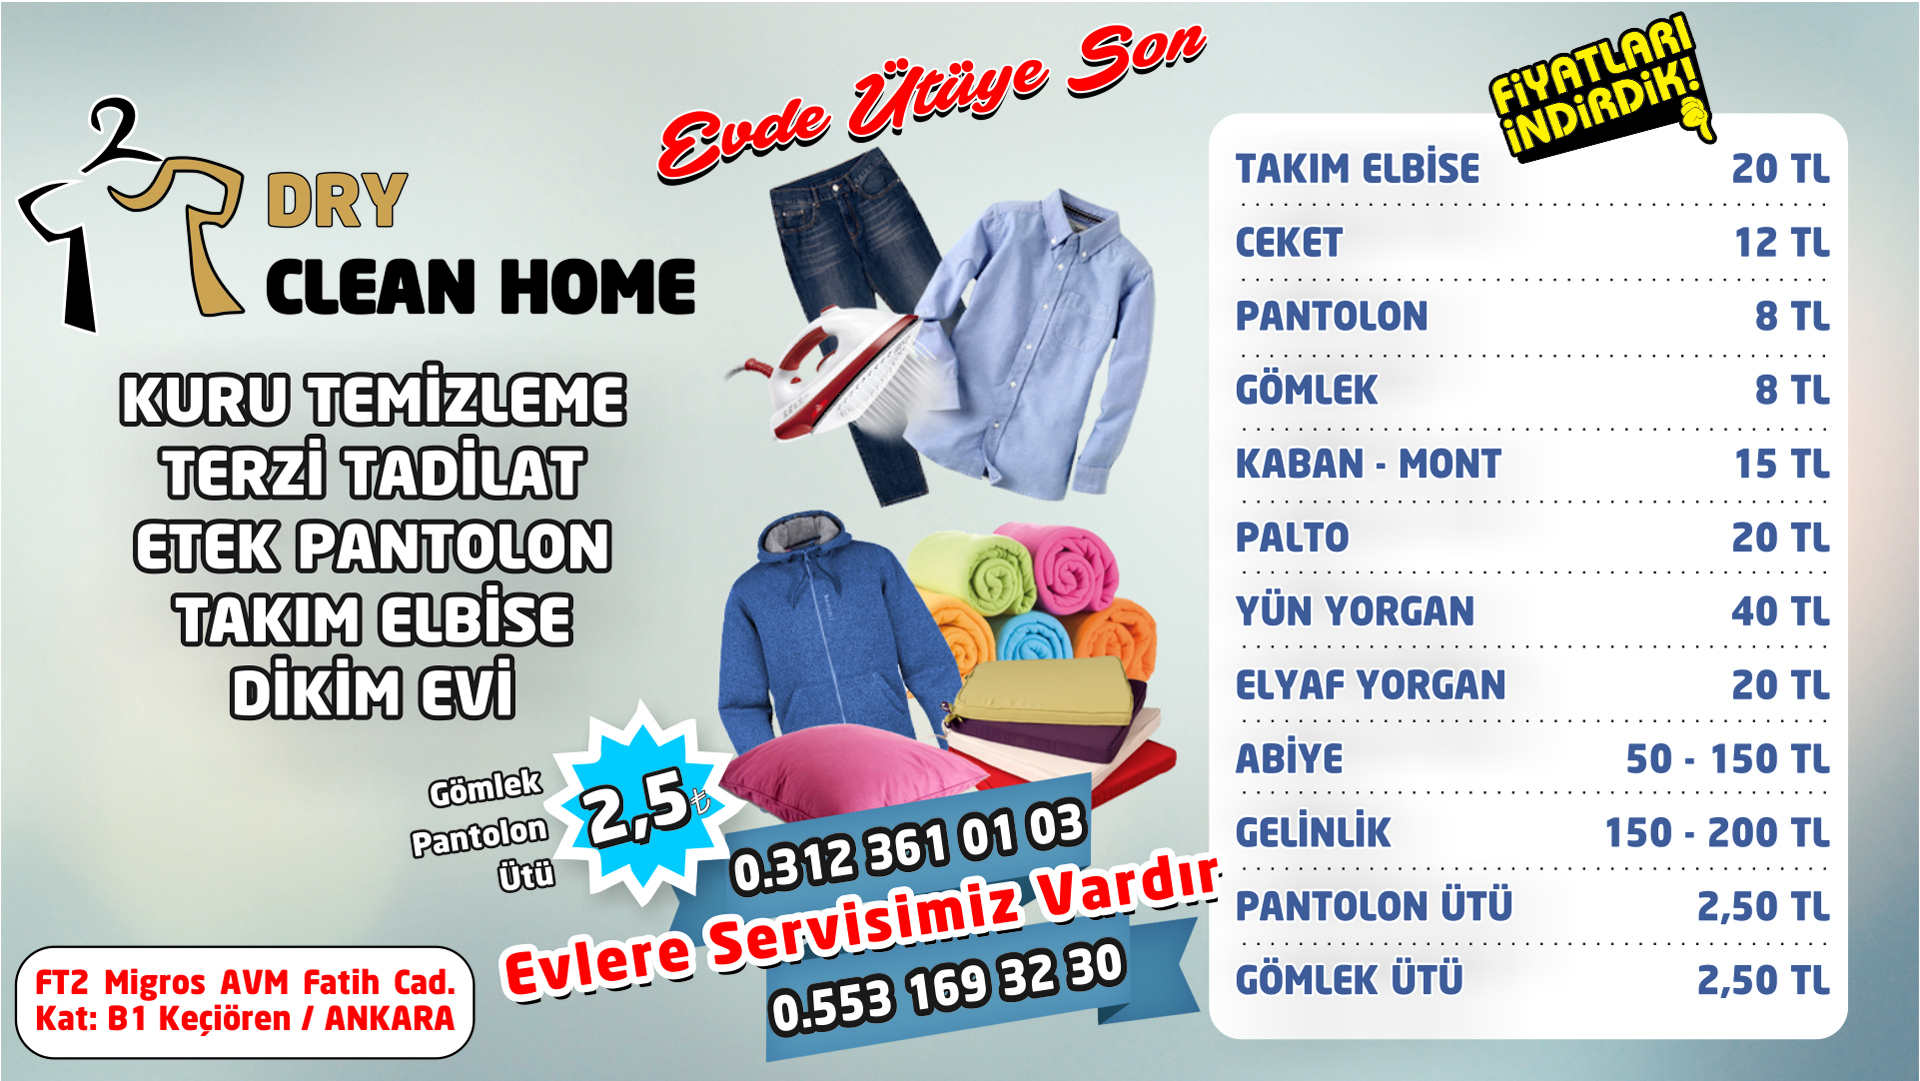 DRY CLEAN HOME